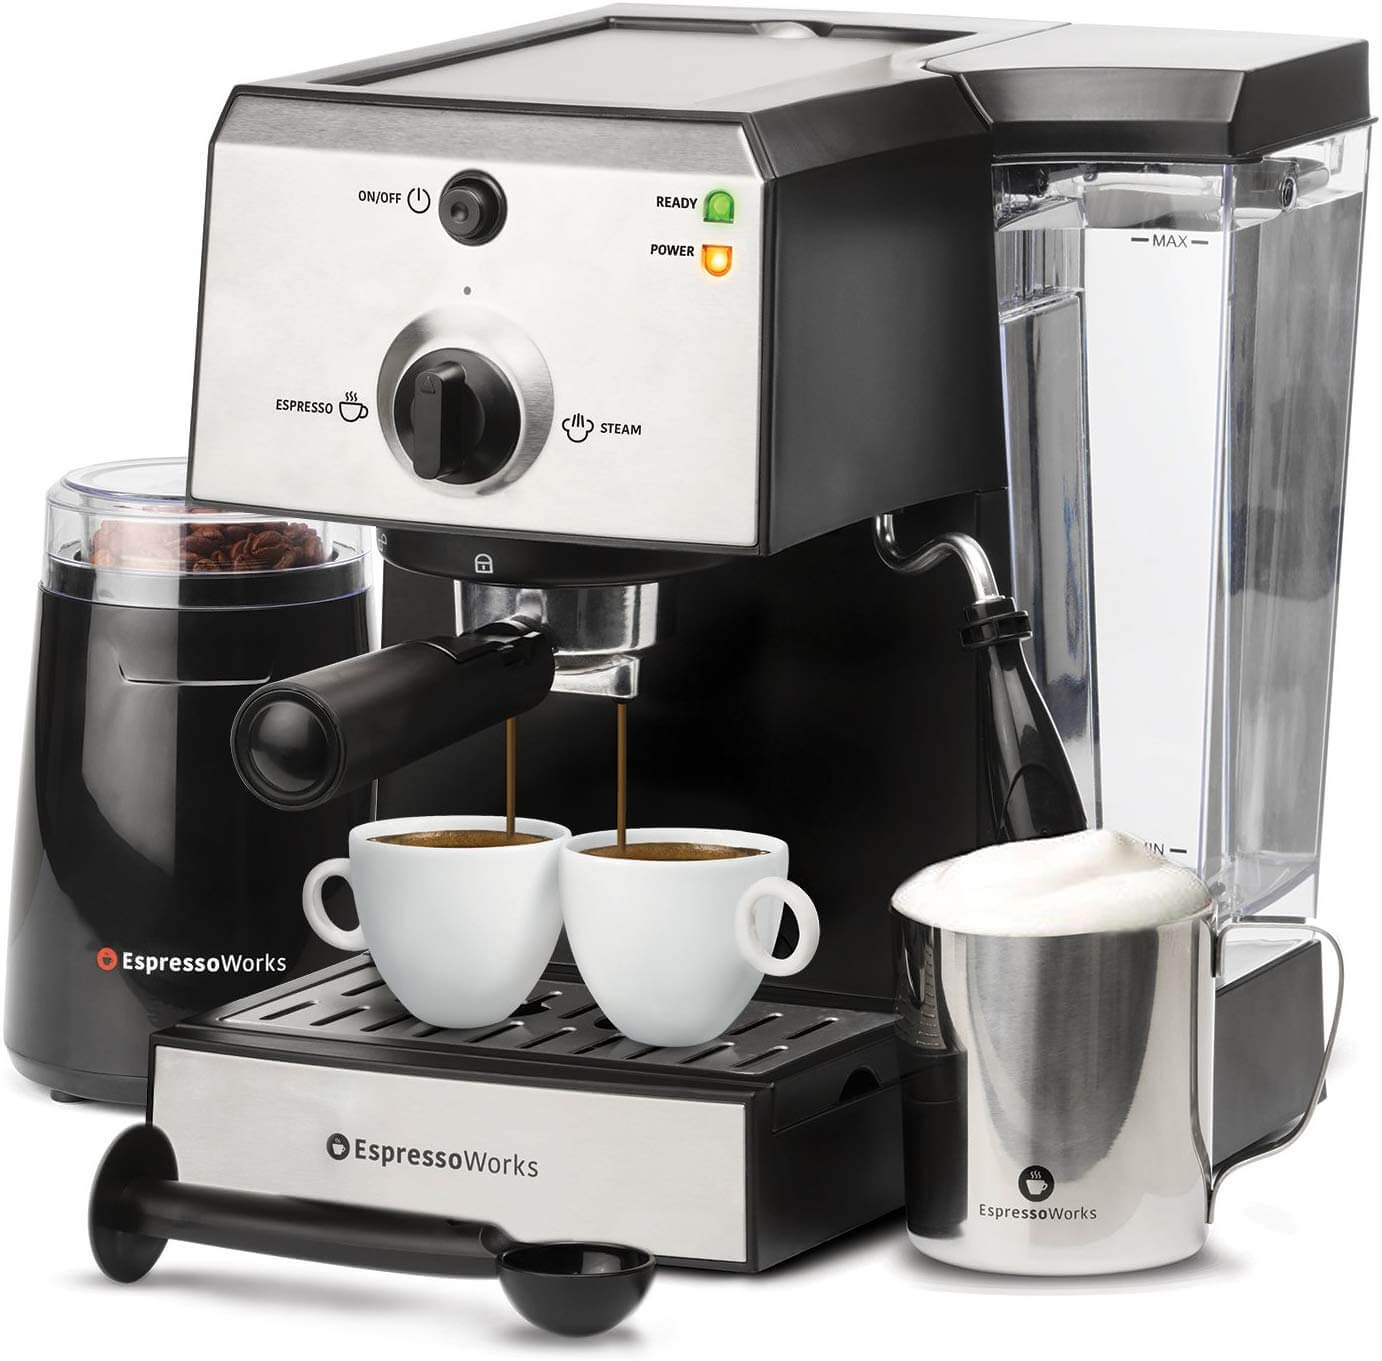 EspressoWorks All-In-One Espresso Machine and Cappuccino Maker